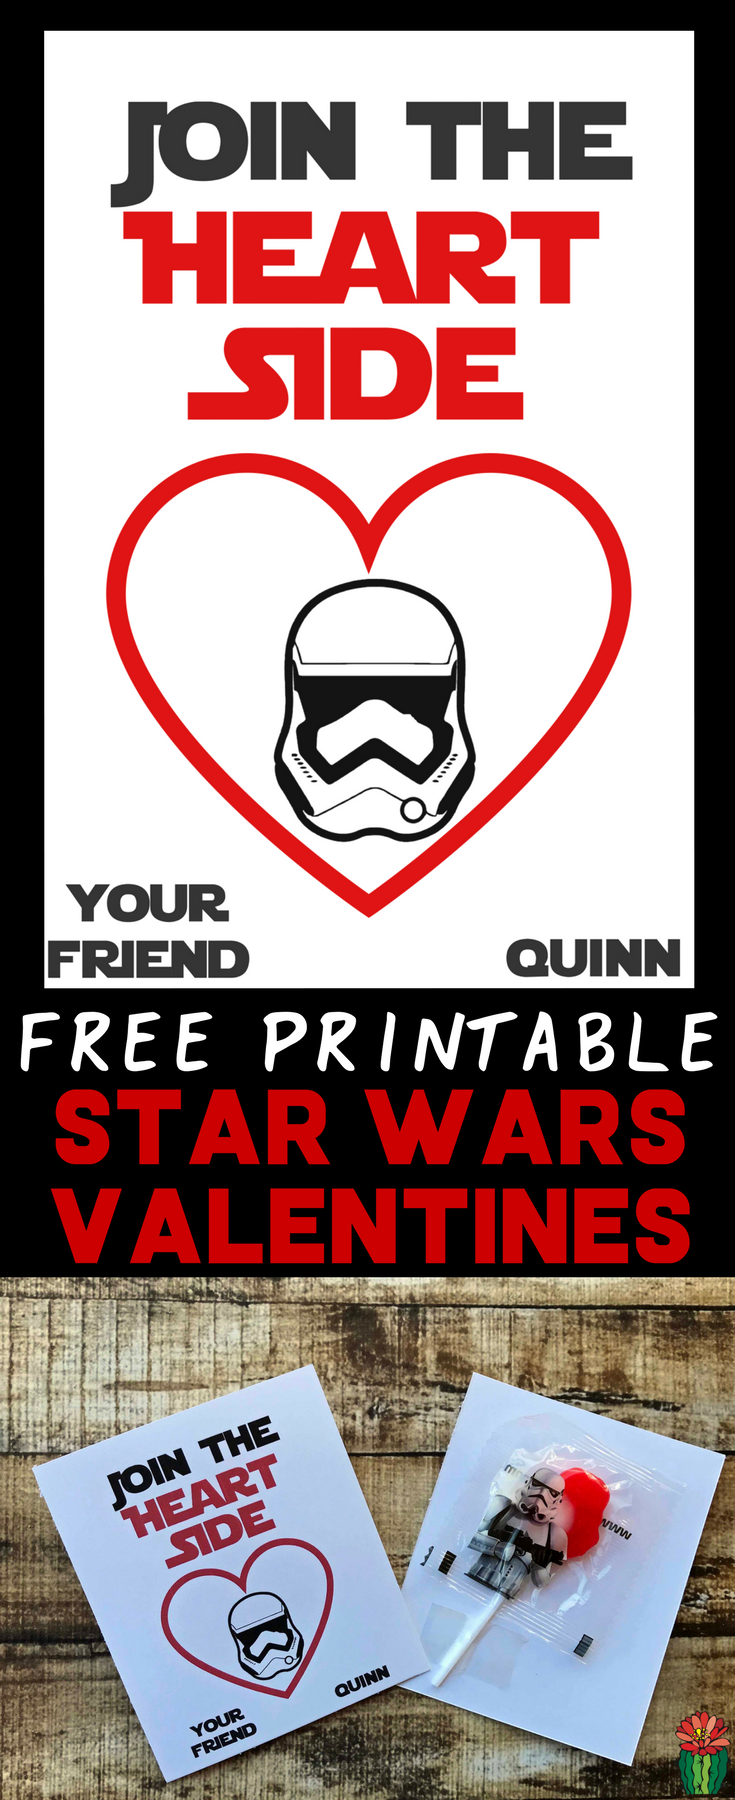 Looking for cute Star Wars Valentine cards for your kids to pass out? Check out this free printable idea, Come To The Heart Side featuring Stormtroopers. Attach treats on the back for an extra special DIY Star Wars Valentines Day.